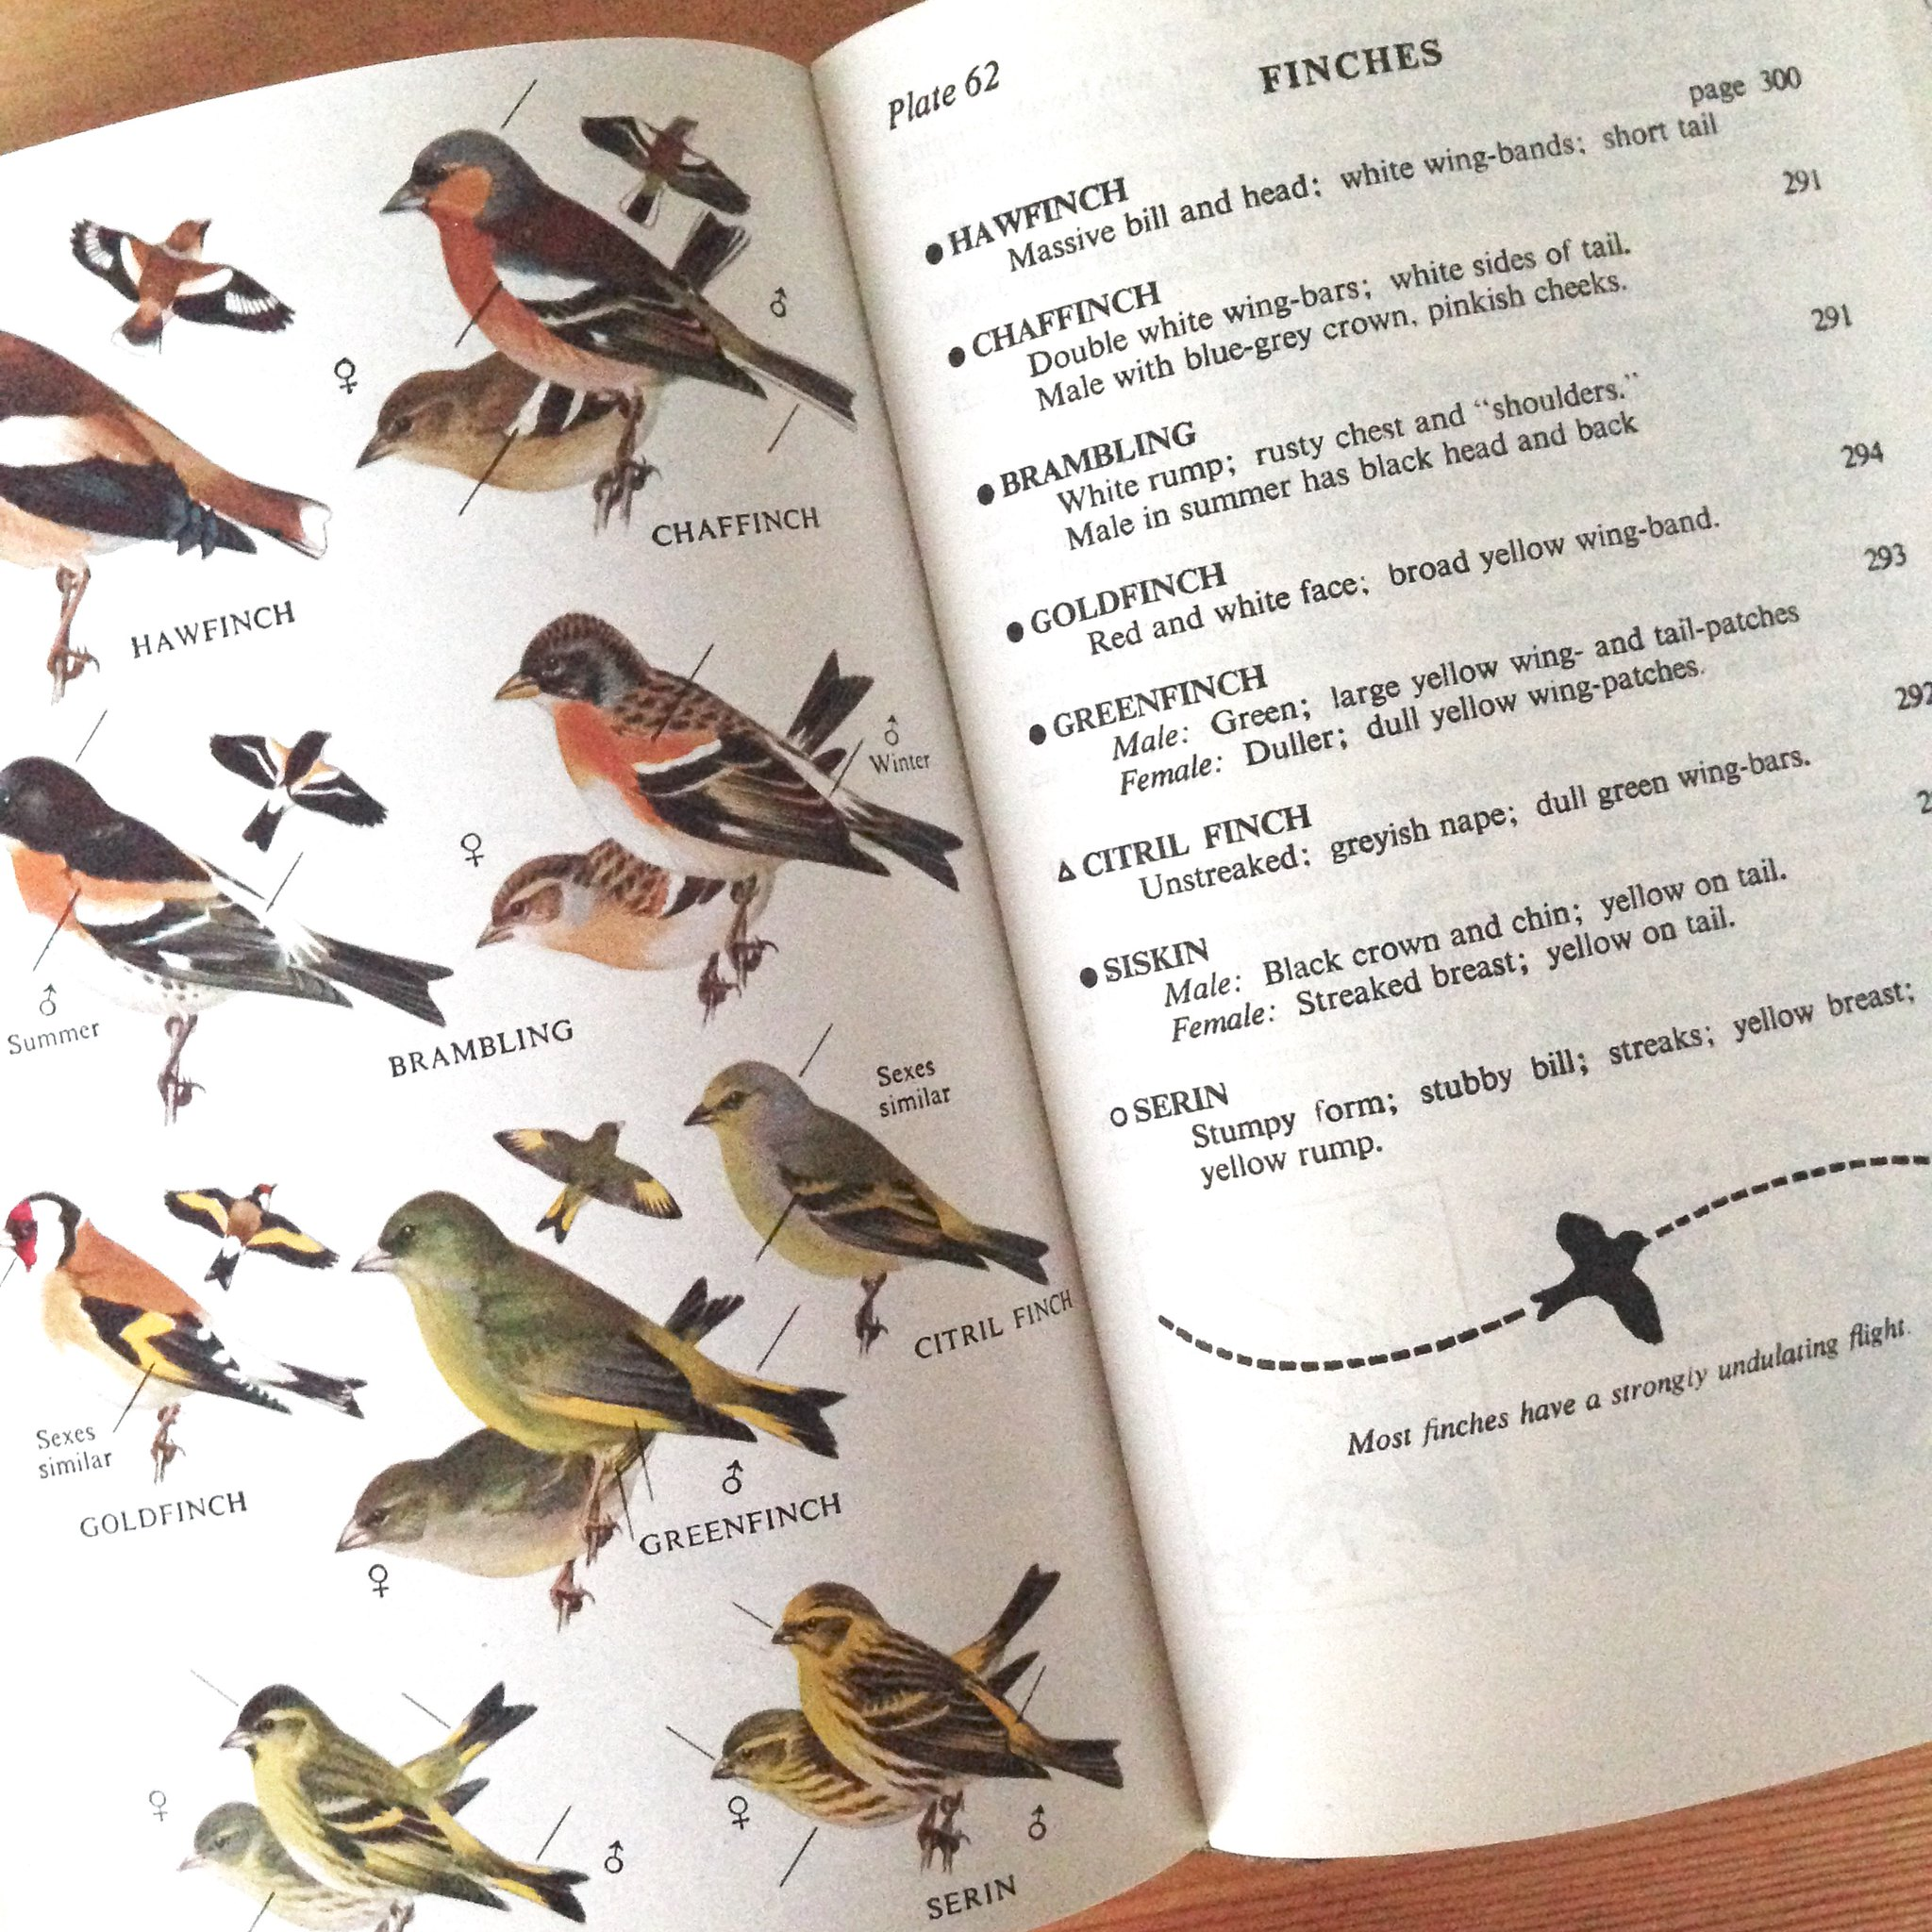 A page of finches